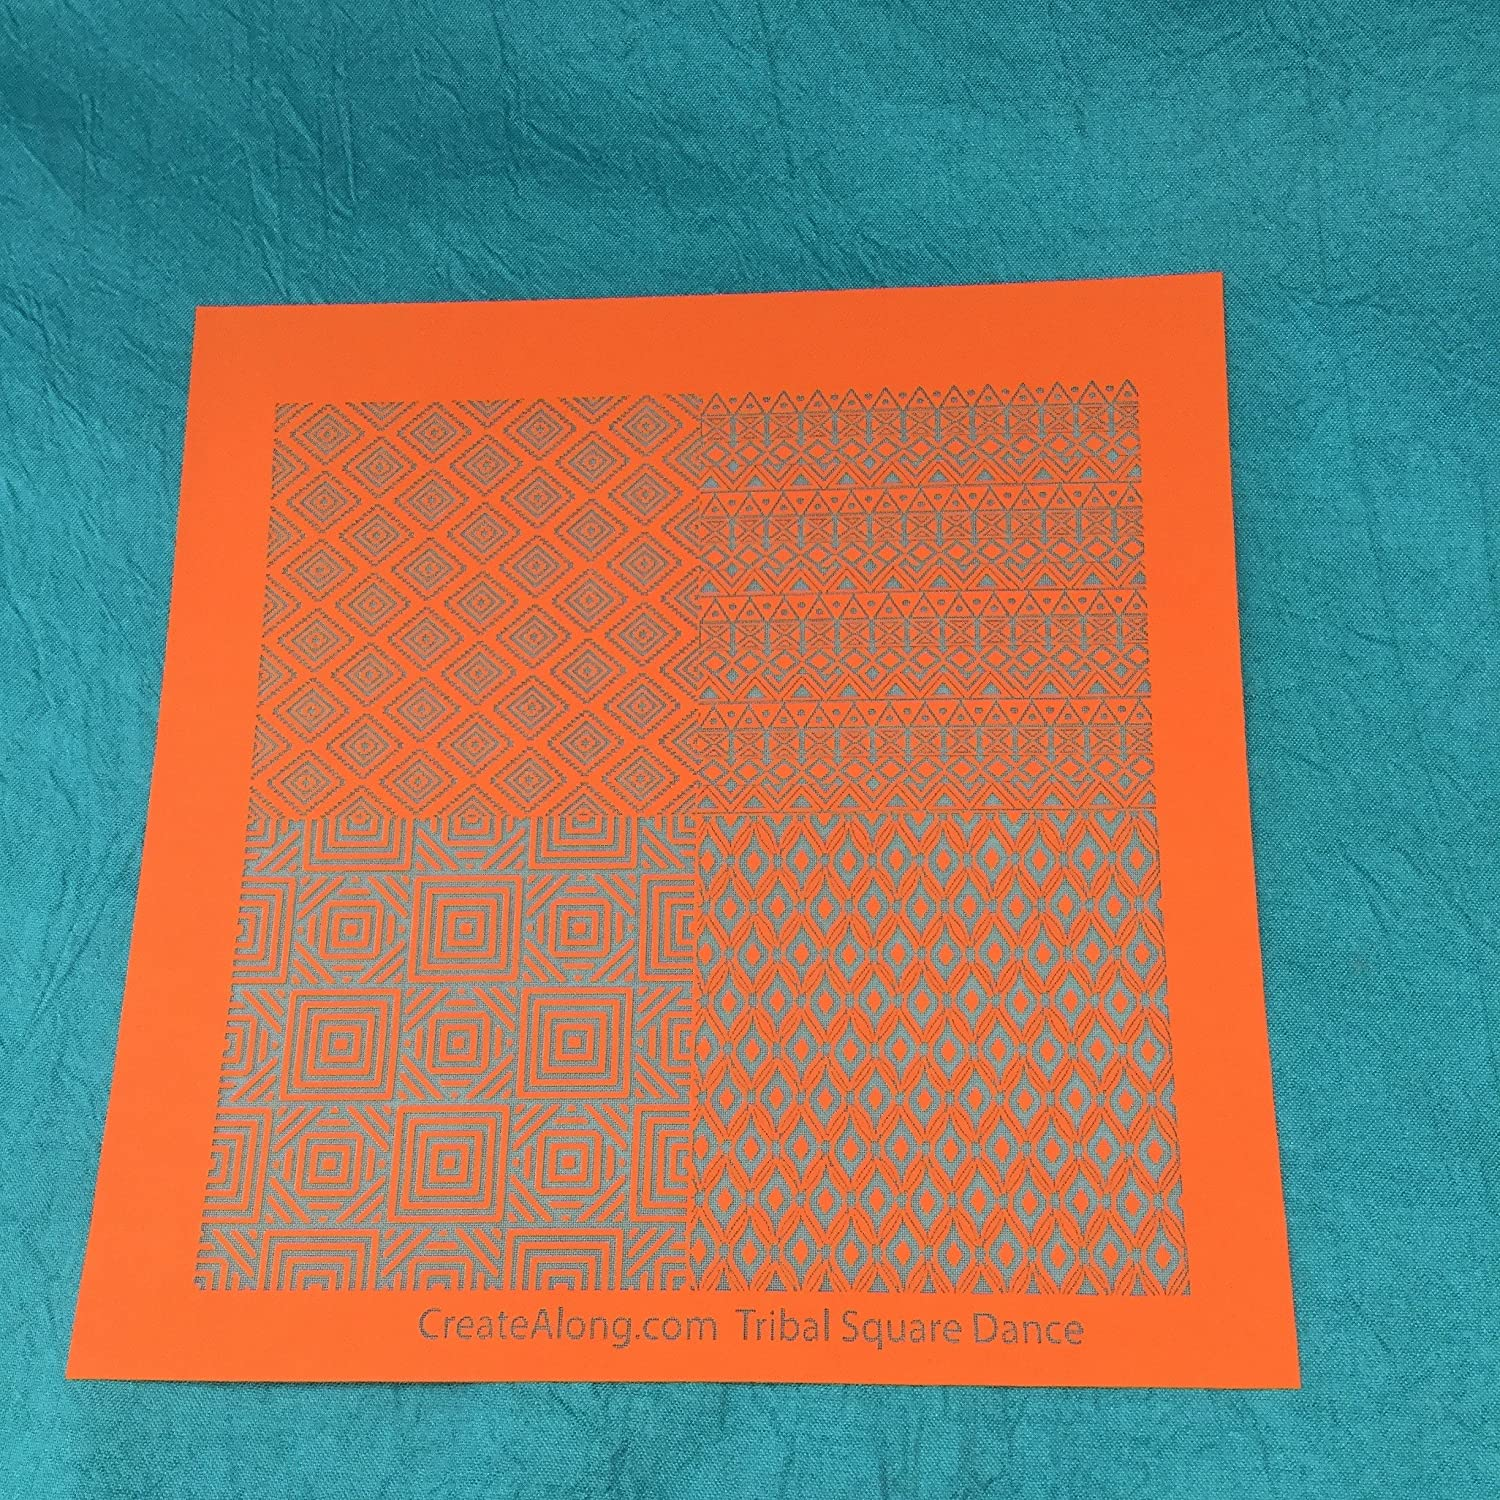 Silkscreen Stencil Tribal Squaredance Multi Image for Polymer Clay and Mixed Media